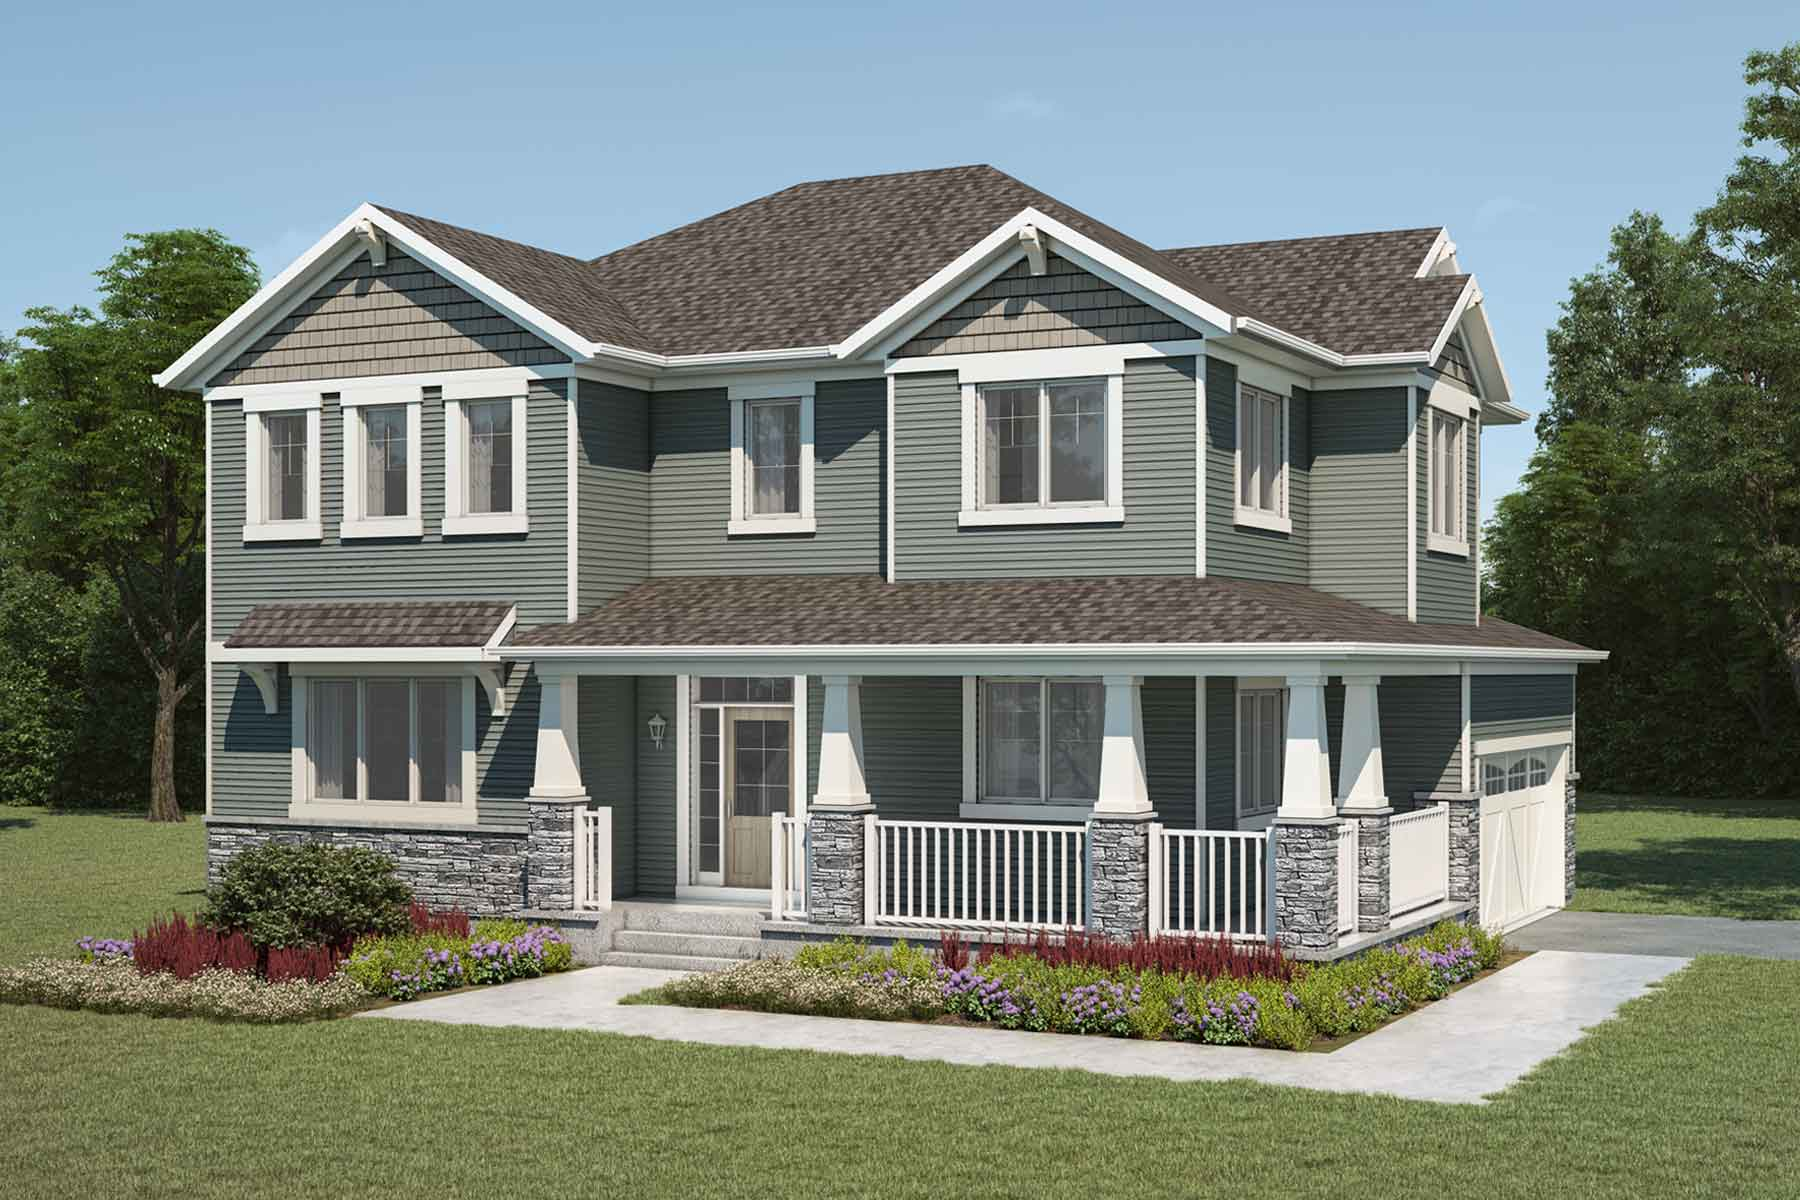 Borgeau Plan craftsman_carrington_borgeau at Carrington in Calgary Alberta by Mattamy Homes